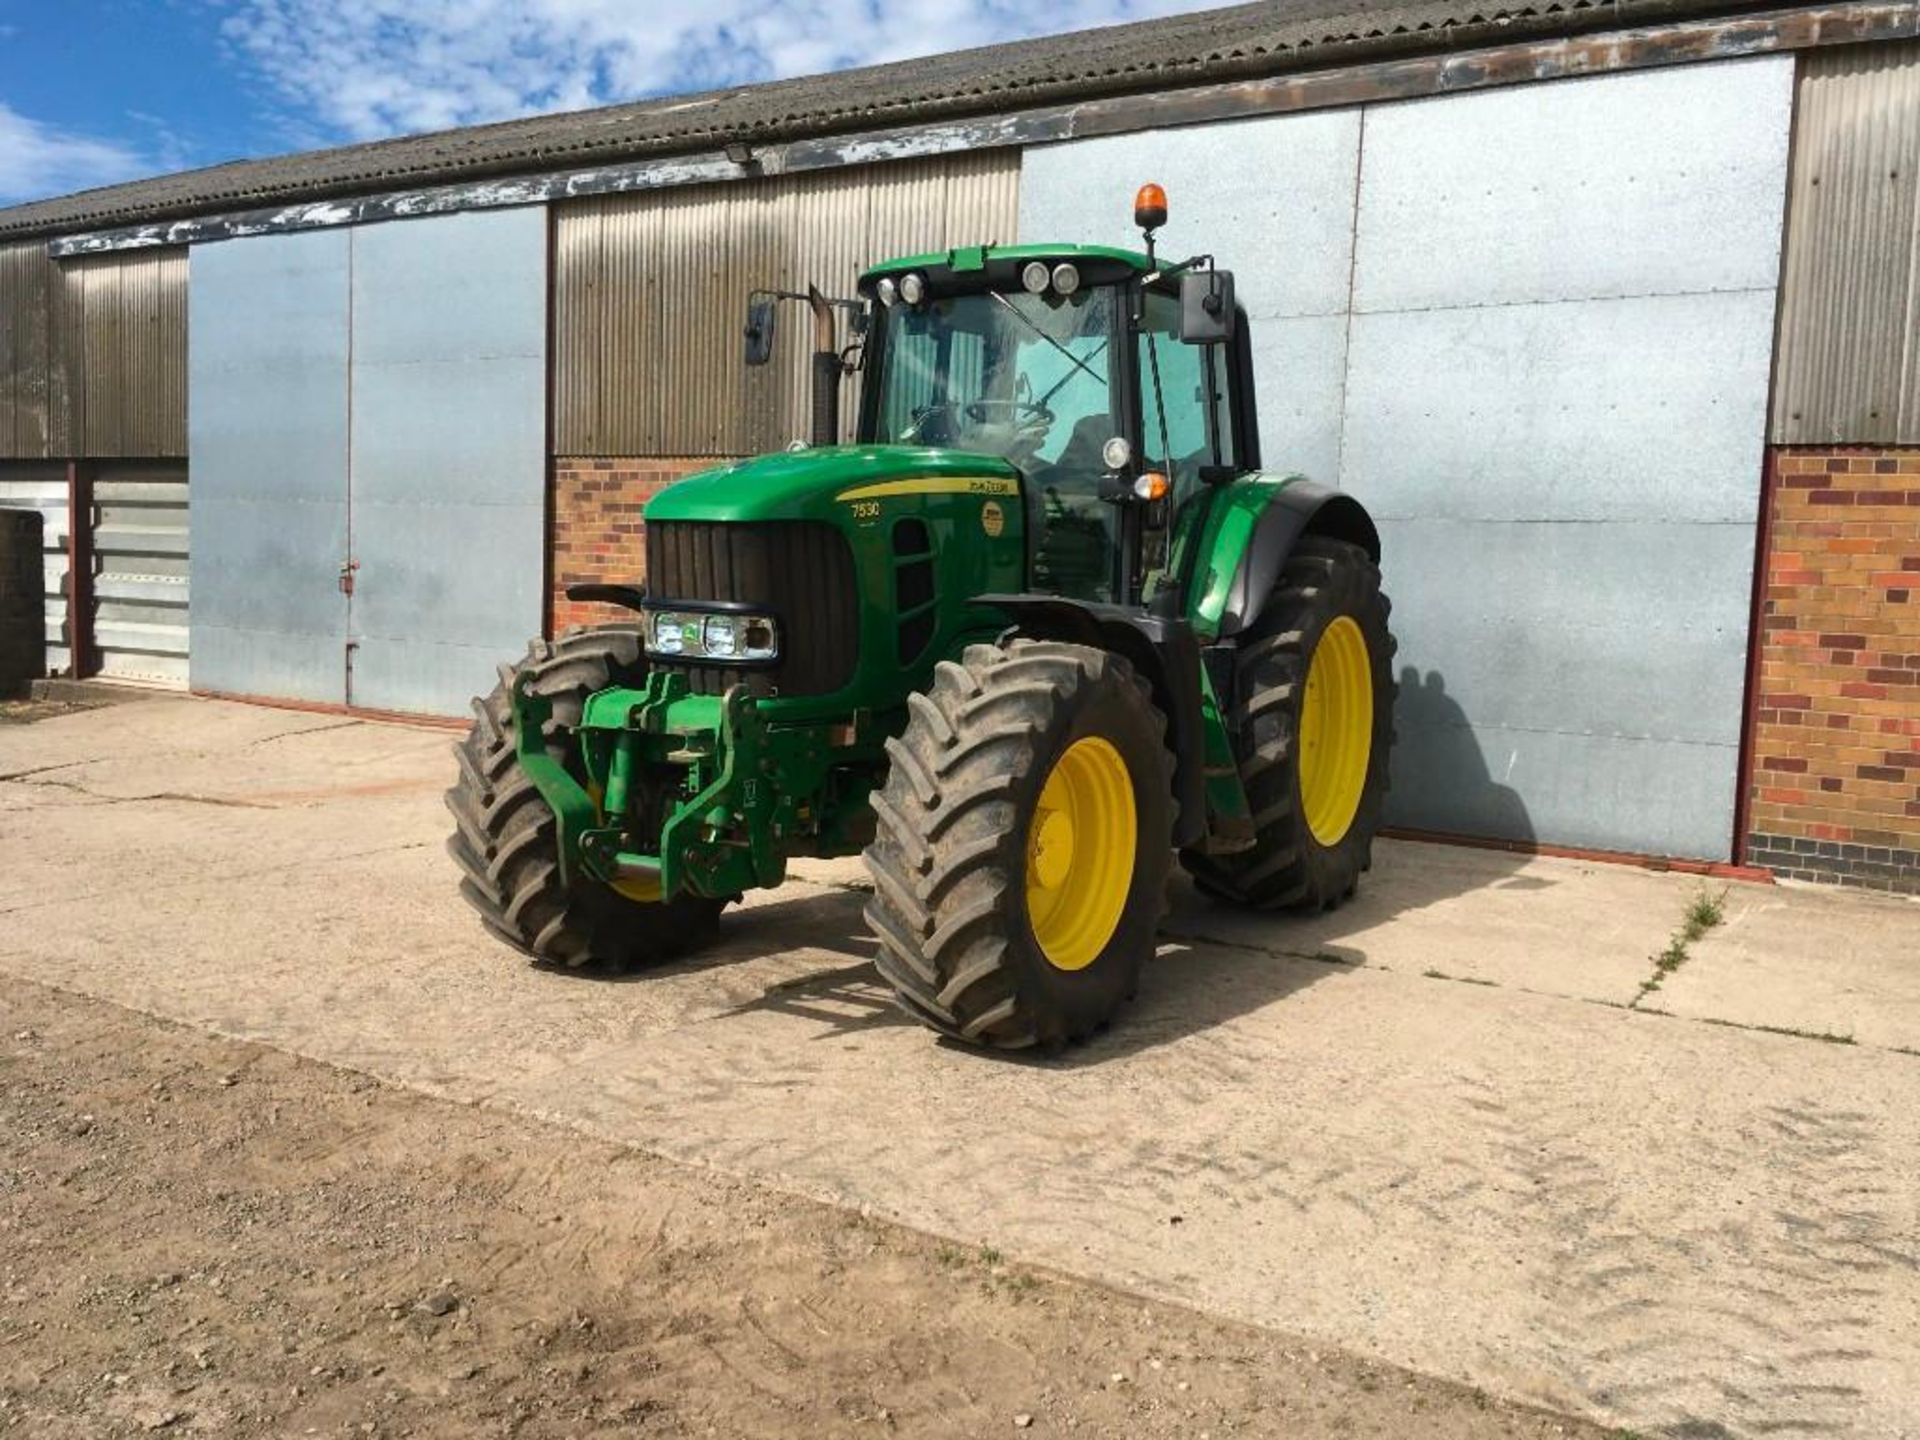 2008 John Deere 7530 tractor with auto quad gear box, 4 spool valves, pick up hitch, air seat, front - Image 4 of 14